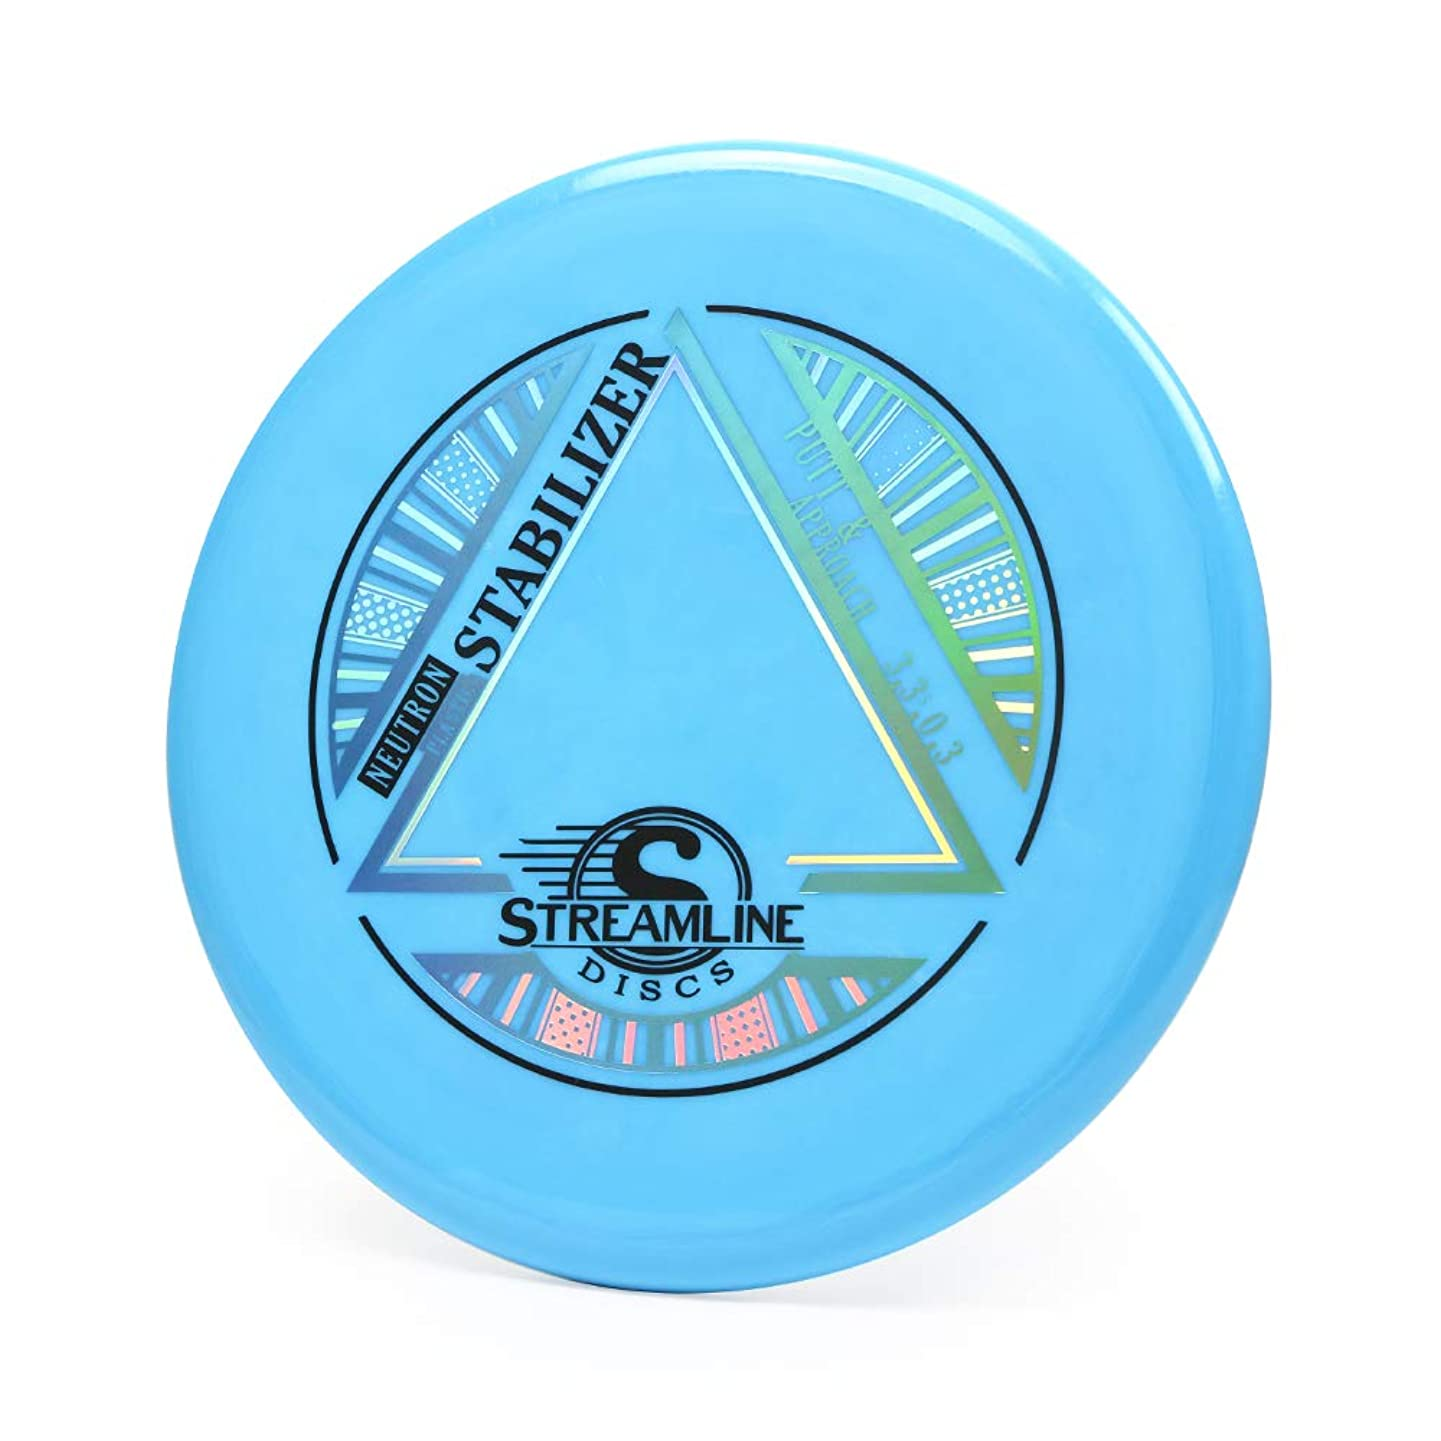 Streamline Discs Neutron Stabilizer Putter Golf Disc [Colors May Vary]